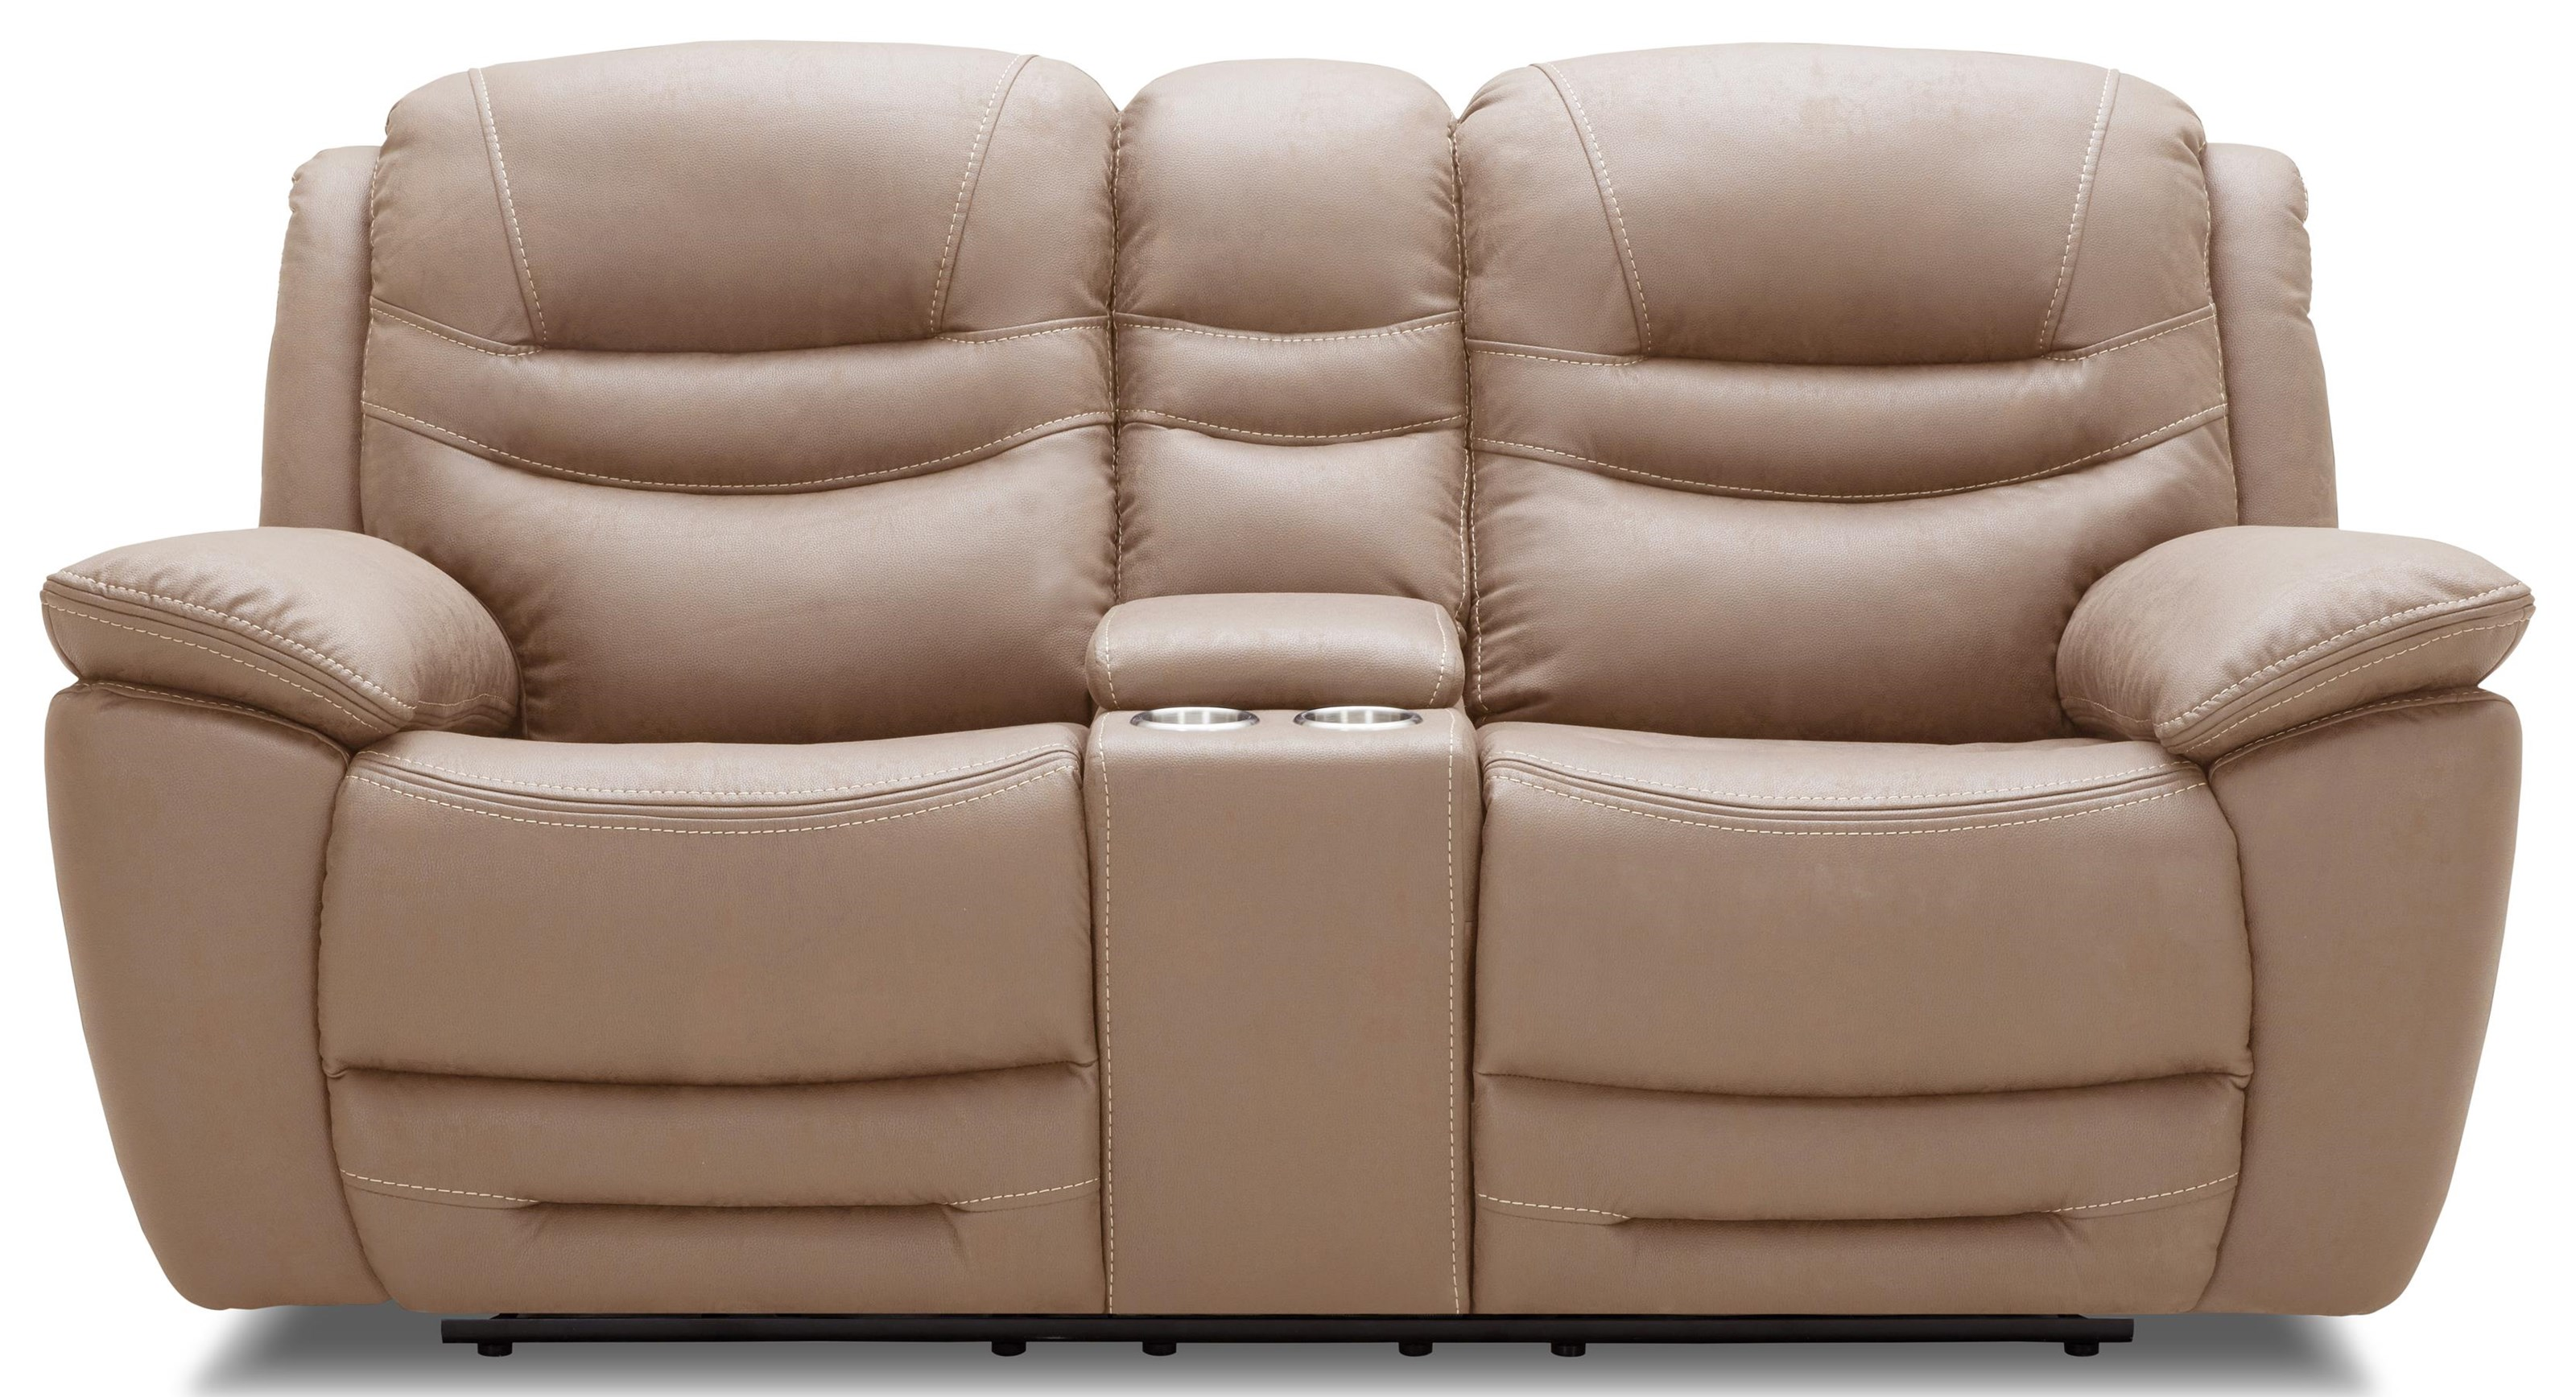 KM083 Reclining Loveseat w/ Console by Kuka Home at Beck's Furniture